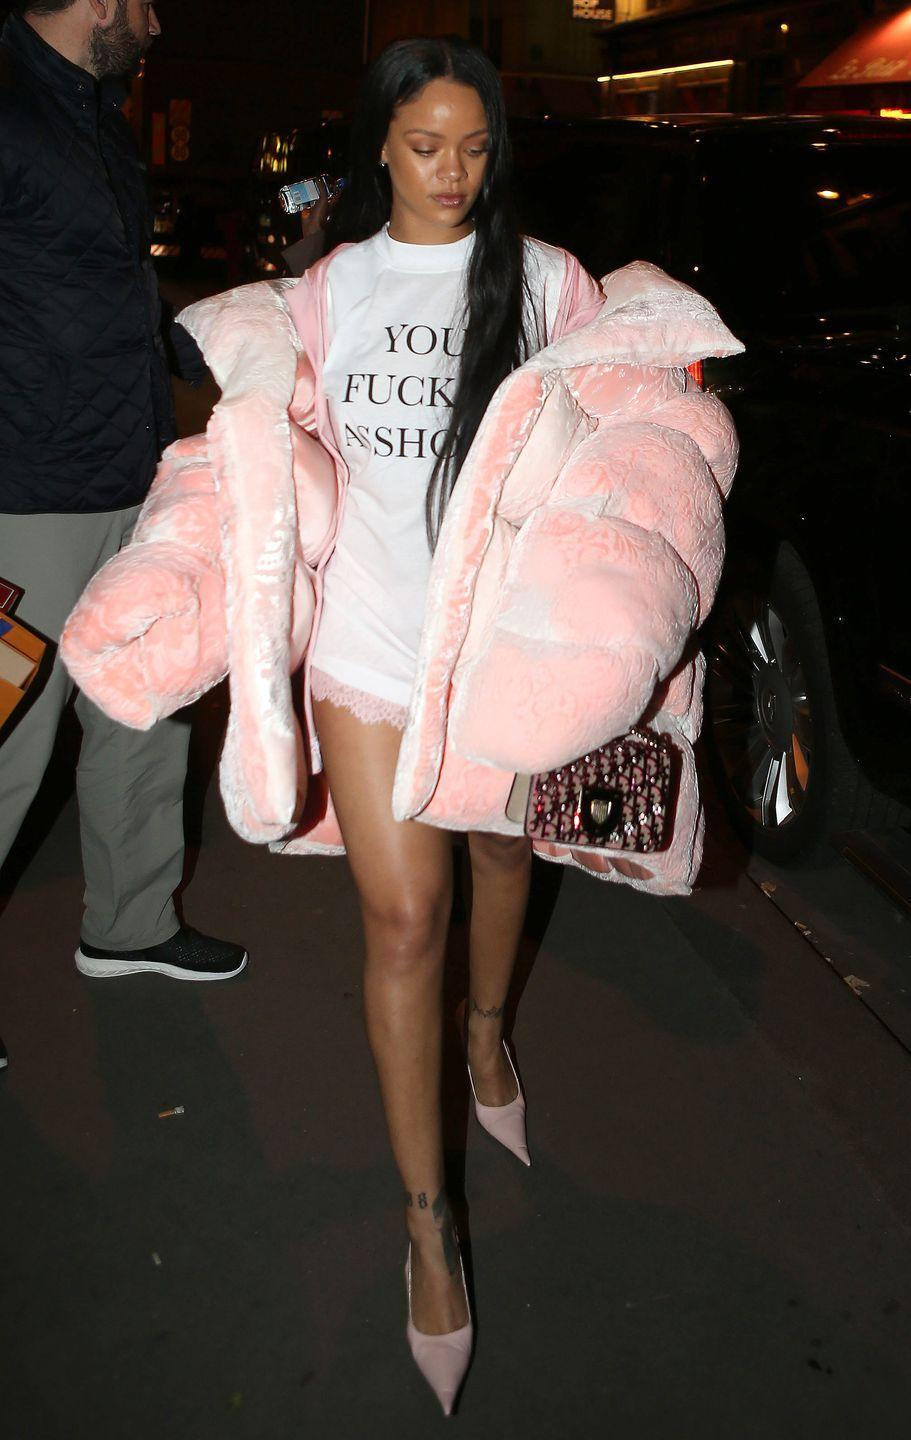 "<p>In a Vetements ""You Fuck'n Asshole"" t-shirt, lace shorts, a pink cardigan, a massive pink puffer jacket by Ella Boucht, a Dior bag and pointed-toe shoes in Paris.</p>"